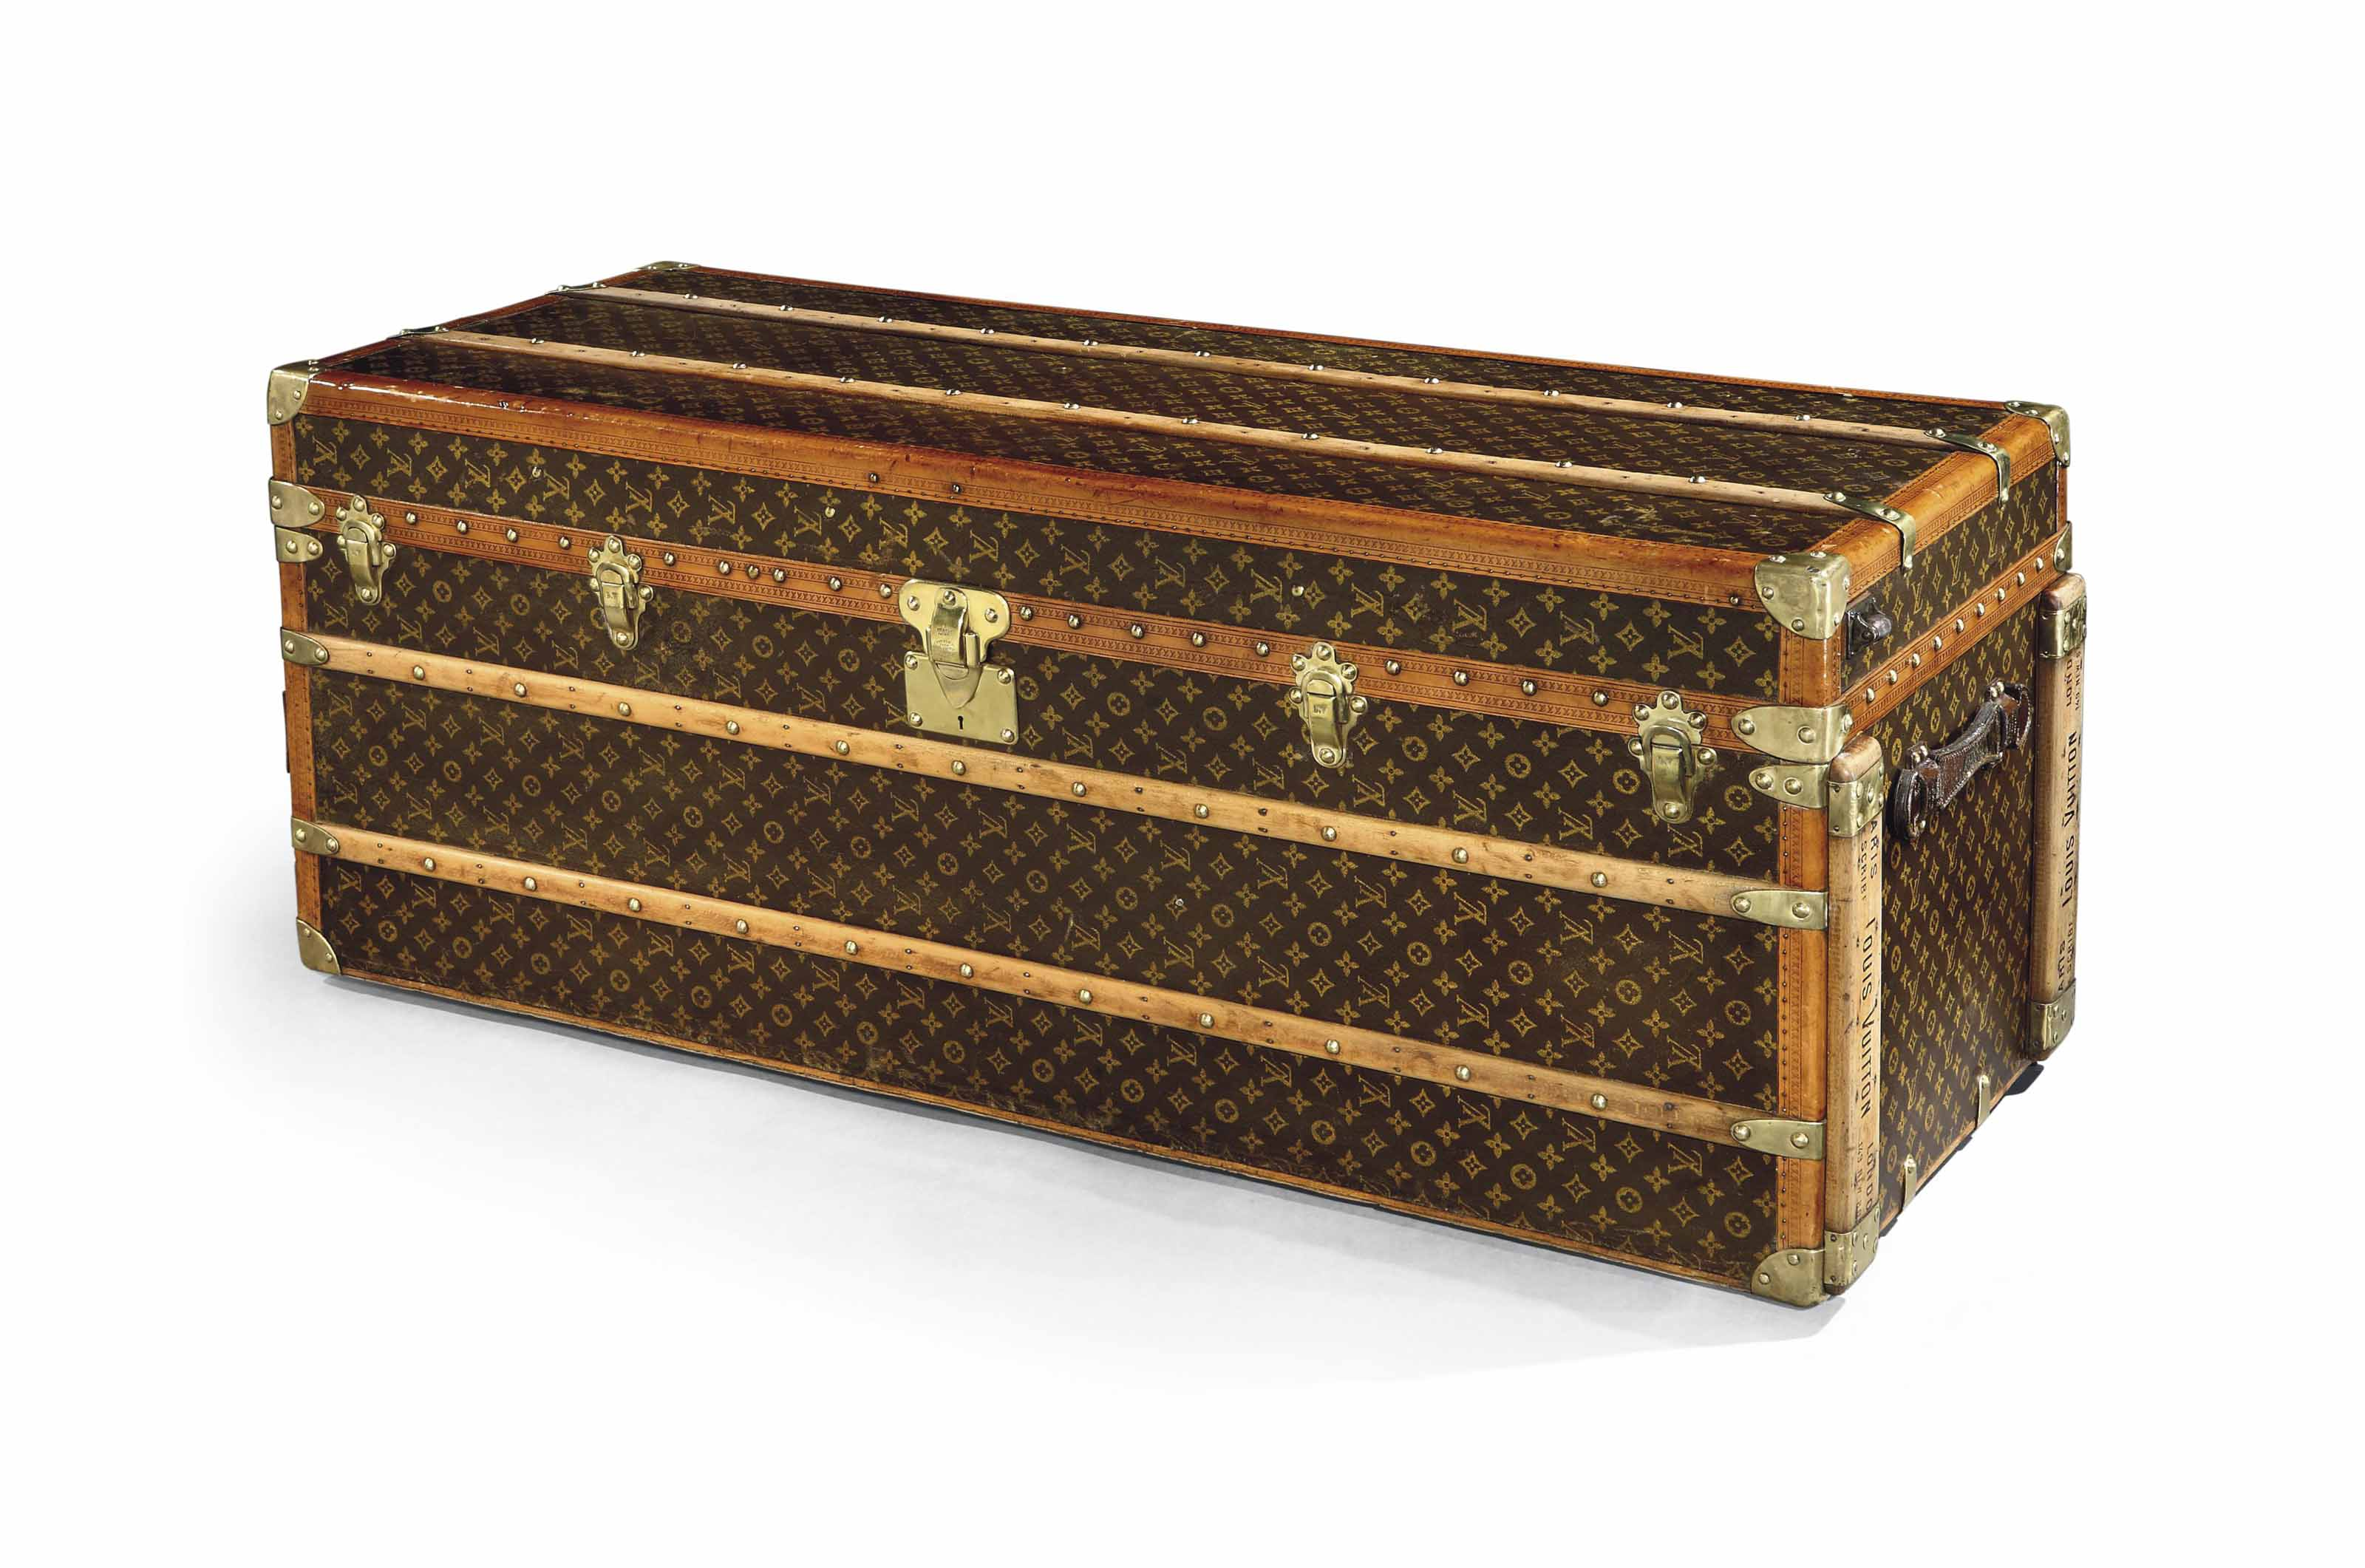 A RARE EXTRA TALL MONOGRAM CANVAS WARDROBE TRUNK